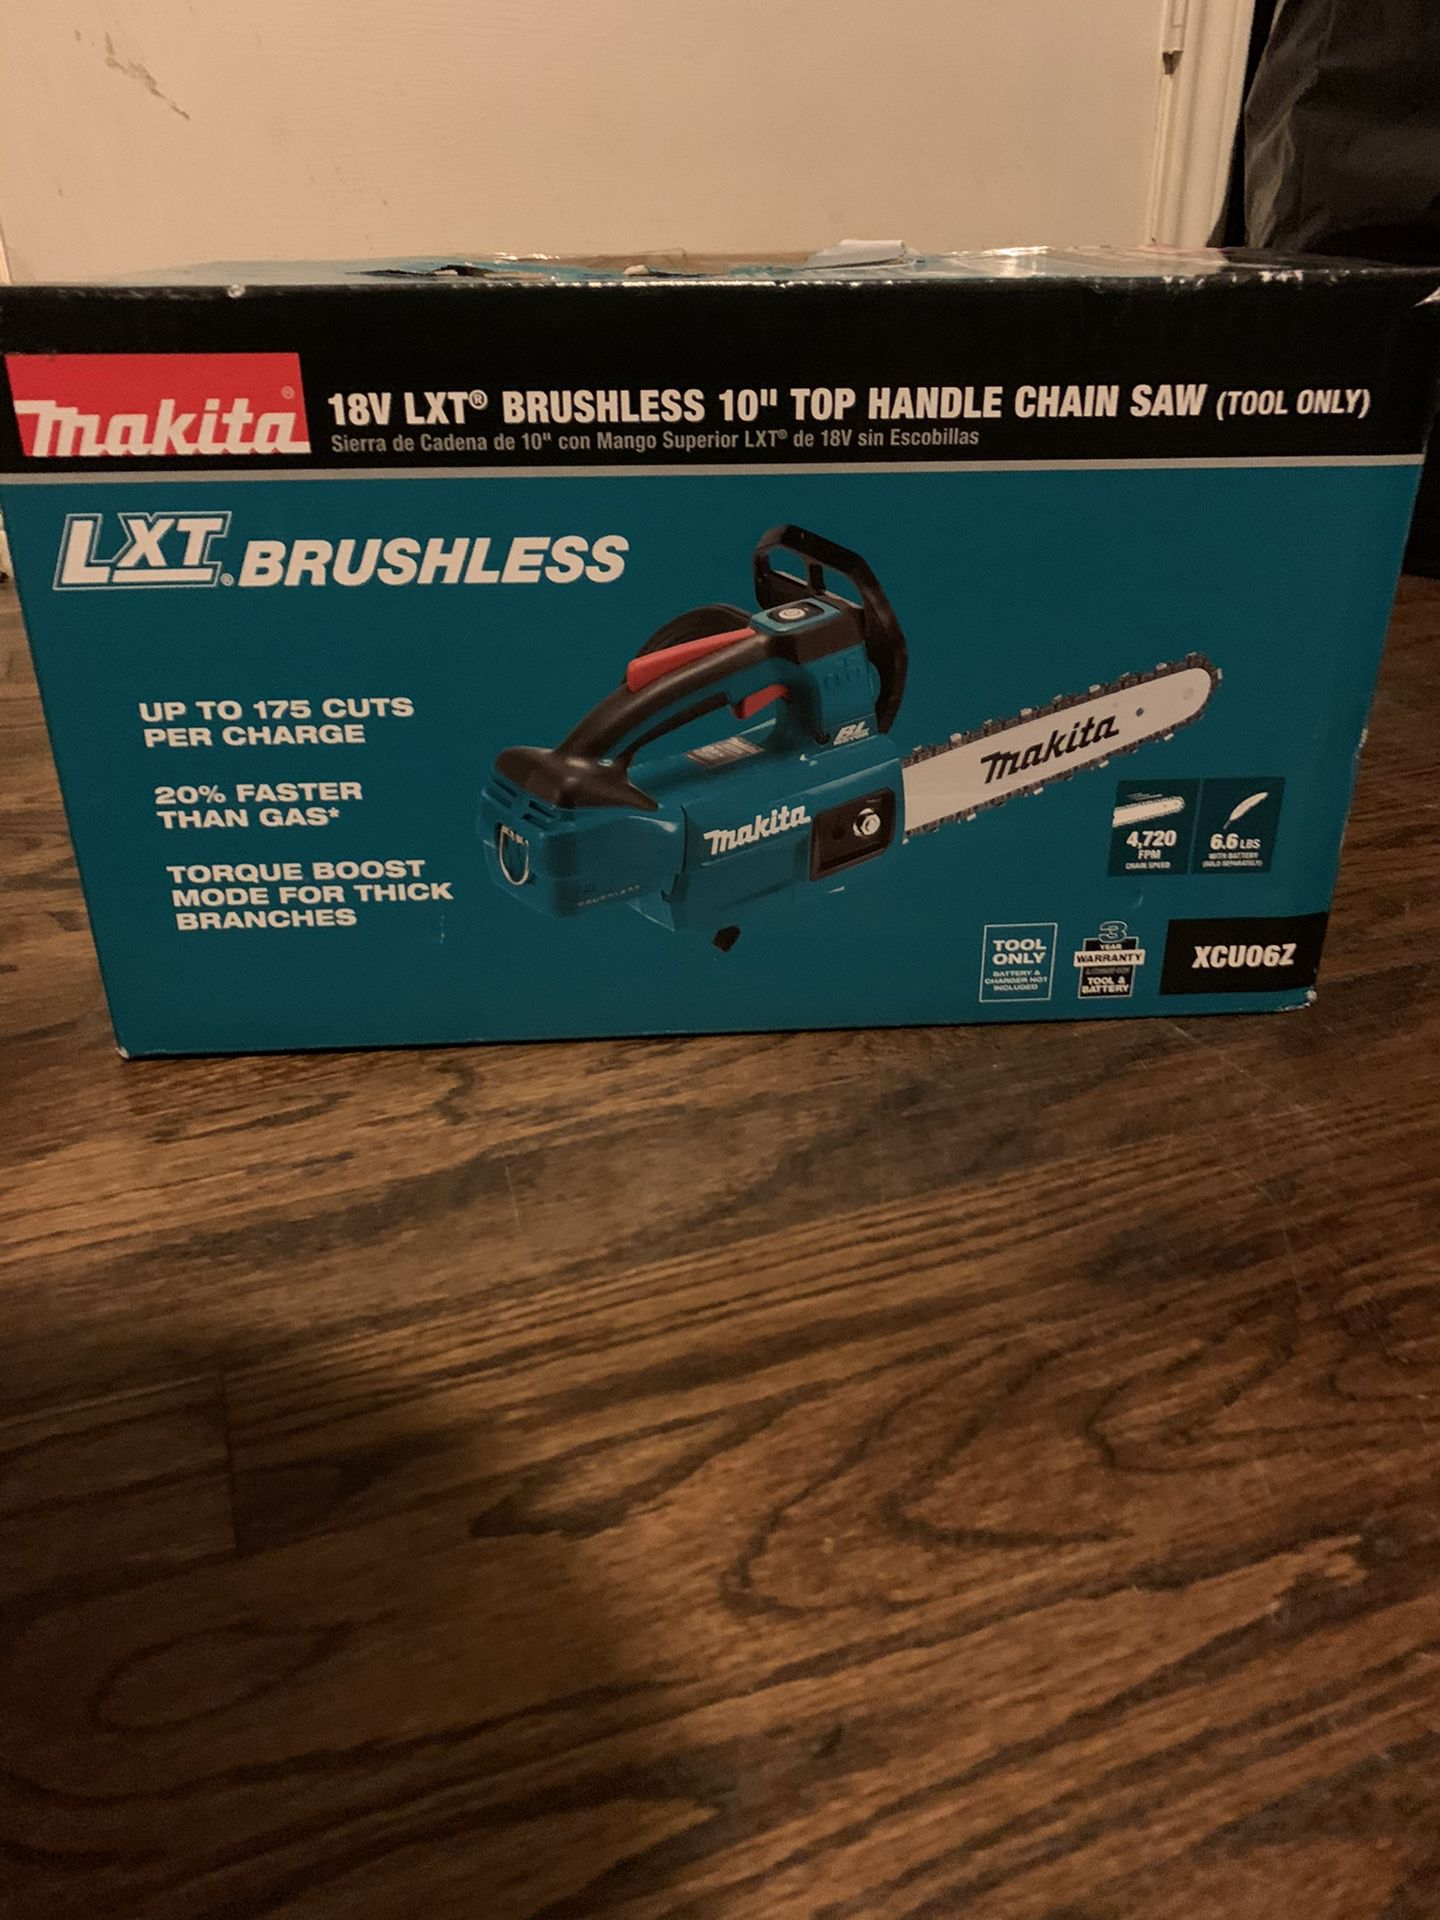 "Makita 18LXT Brushless 10"" Top Handle Chain Saw ""Tool only"""